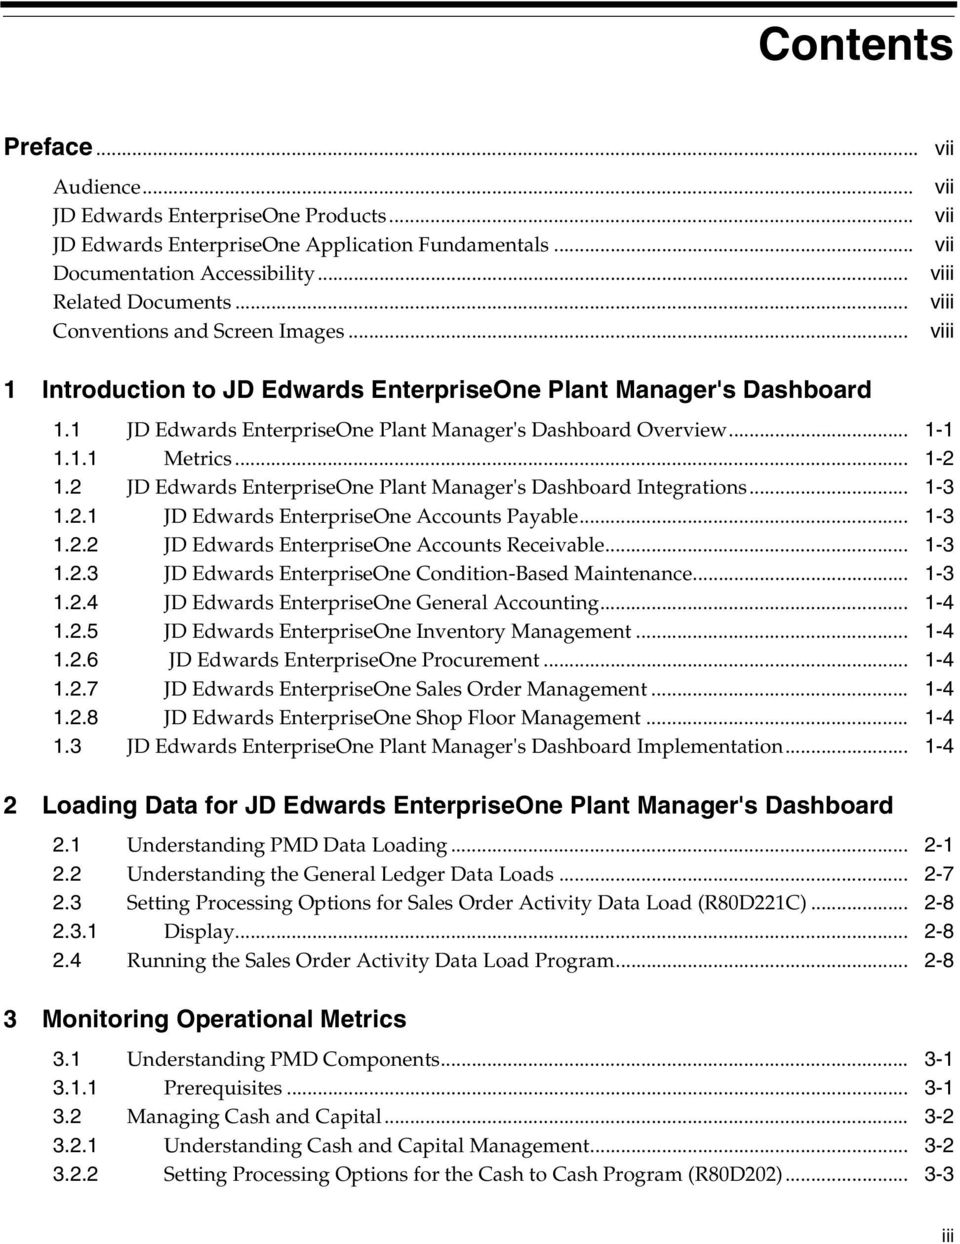 .. 1-2 1.2 JD Edwards EnterpriseOne Plant Manager's Dashboard Integrations... 1-3 1.2.1 JD Edwards EnterpriseOne Accounts Payable... 1-3 1.2.2 JD Edwards EnterpriseOne Accounts Receivable... 1-3 1.2.3 JD Edwards EnterpriseOne Condition-Based Maintenance.